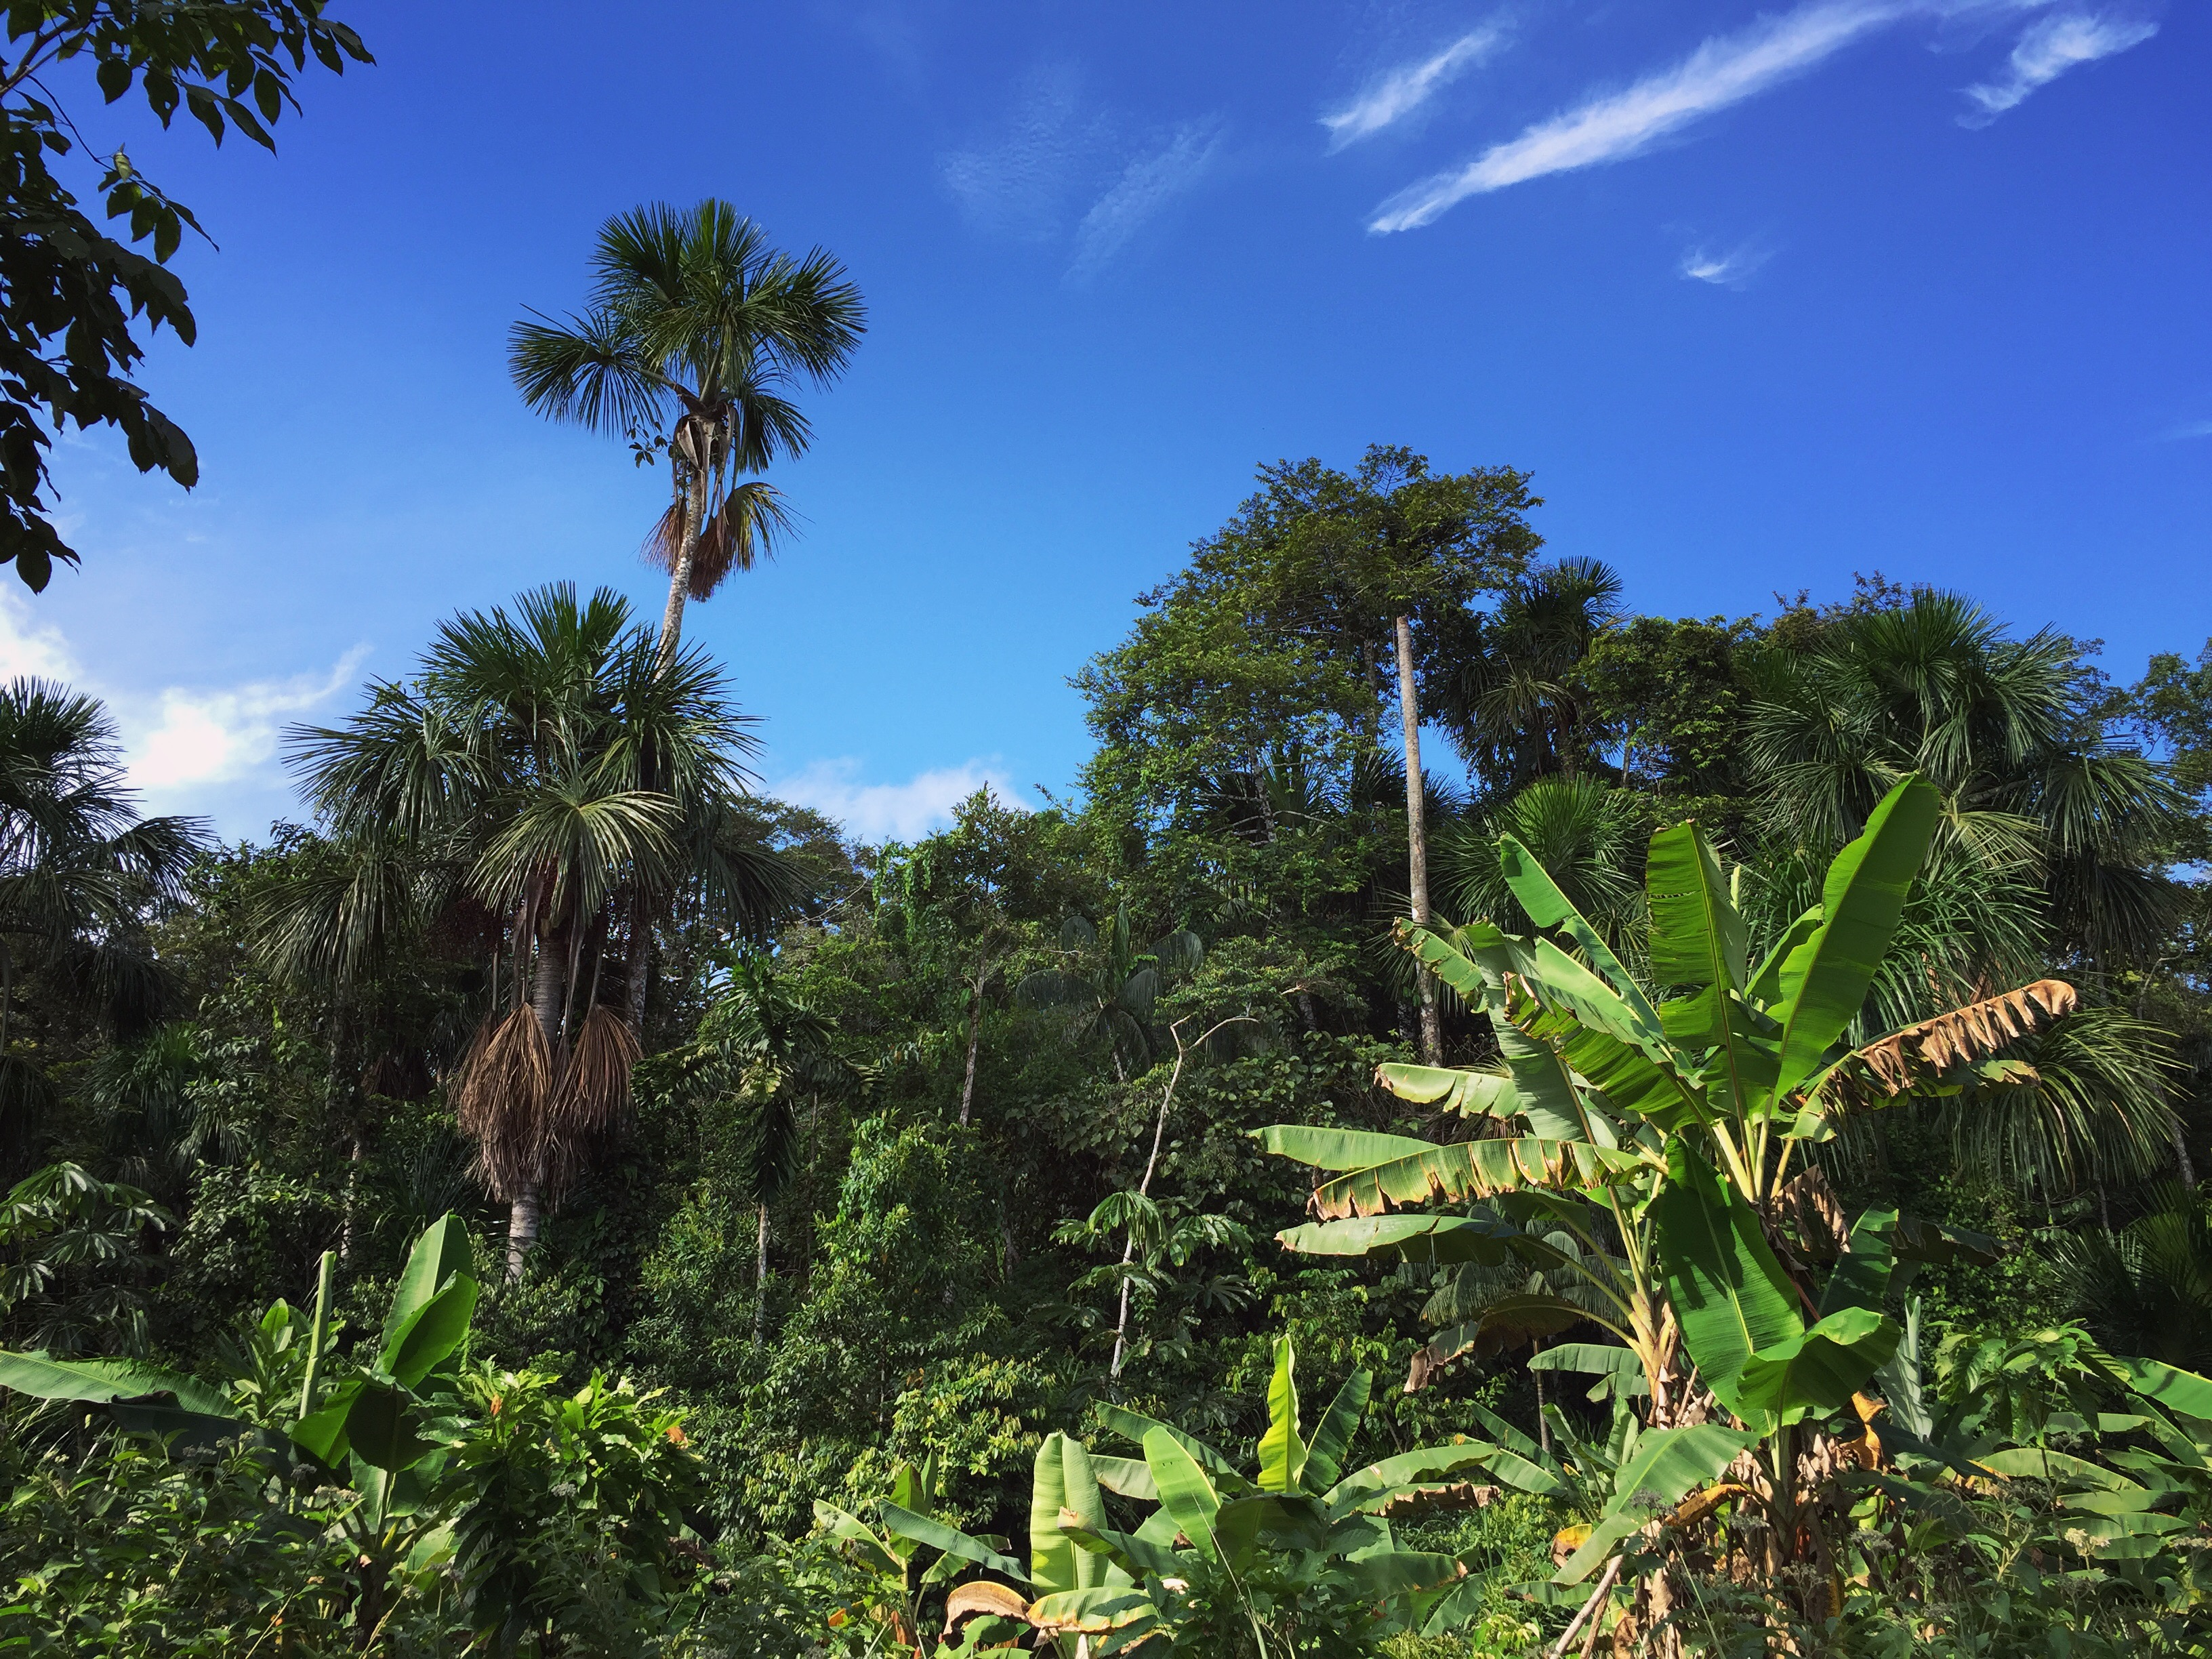 Brazil to open Amazon rainforest national reserve for mining